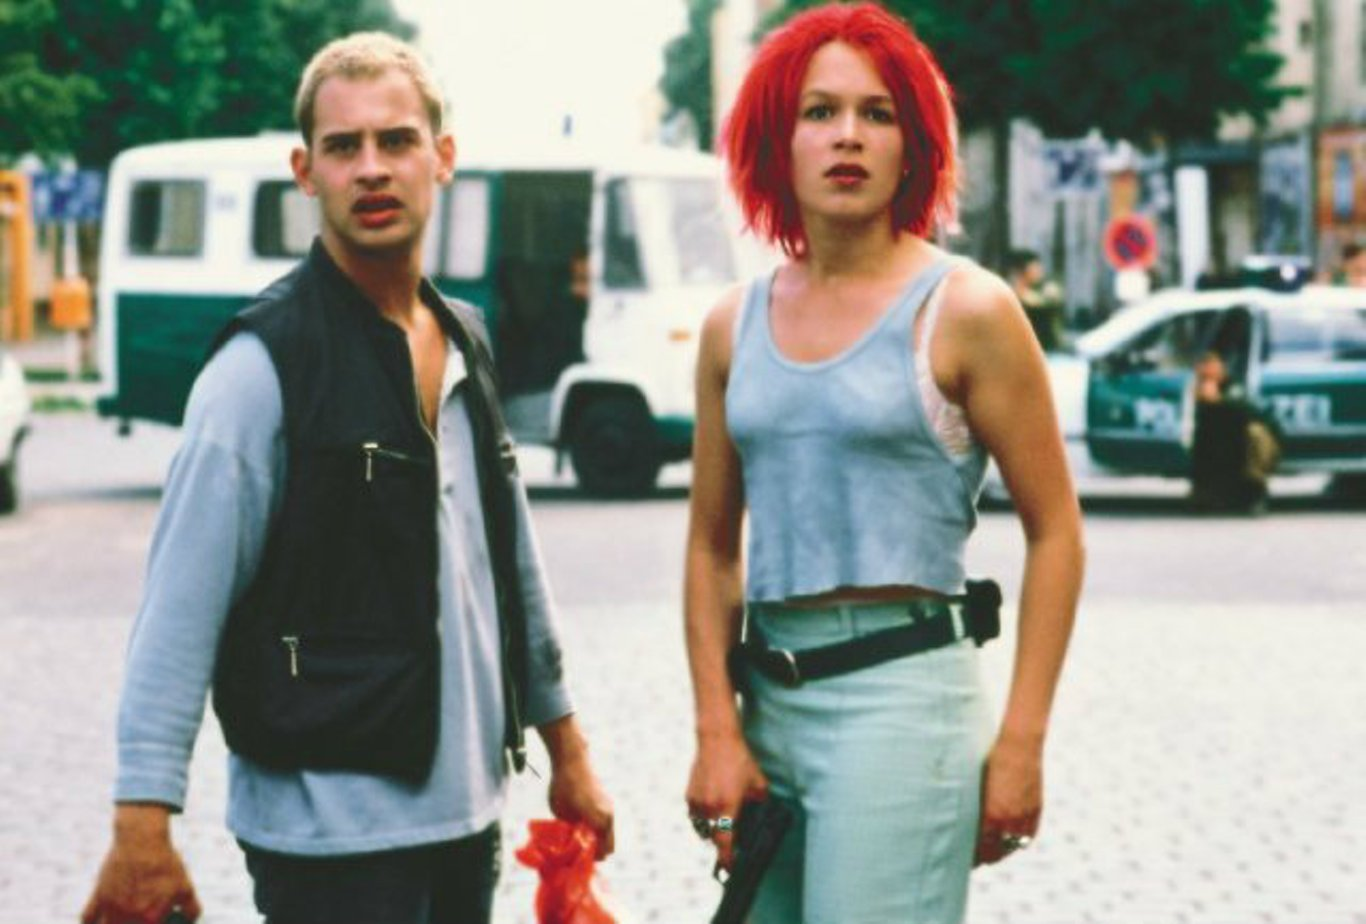 run lola run by director tom tykwer Writer-director tom tykwer handles this techno thriller at a breakneck pace - the action never lets up, and franka potente is terrifically good as the sprinting, road-running heroine run lola run.